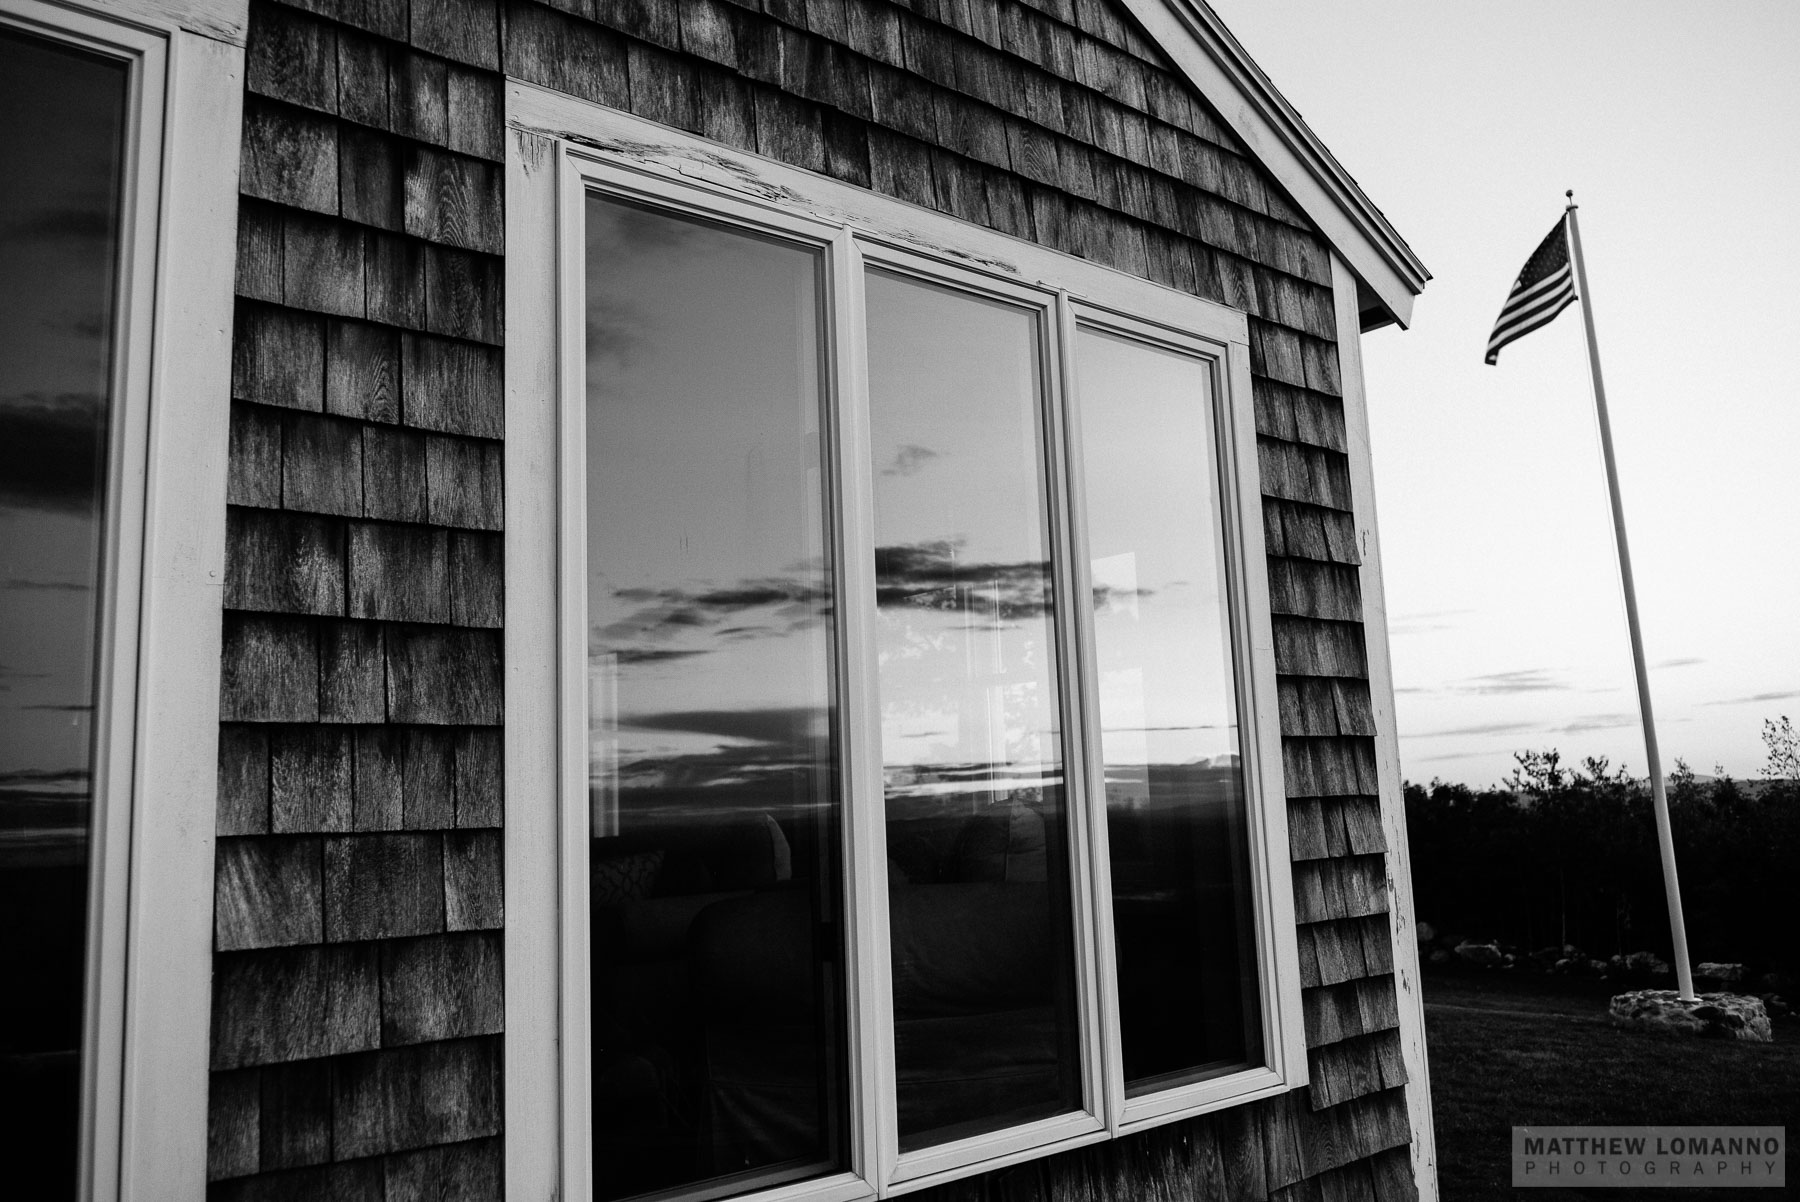 HHD_house_Sept2017_by_Lomanno_0017_web.jpg